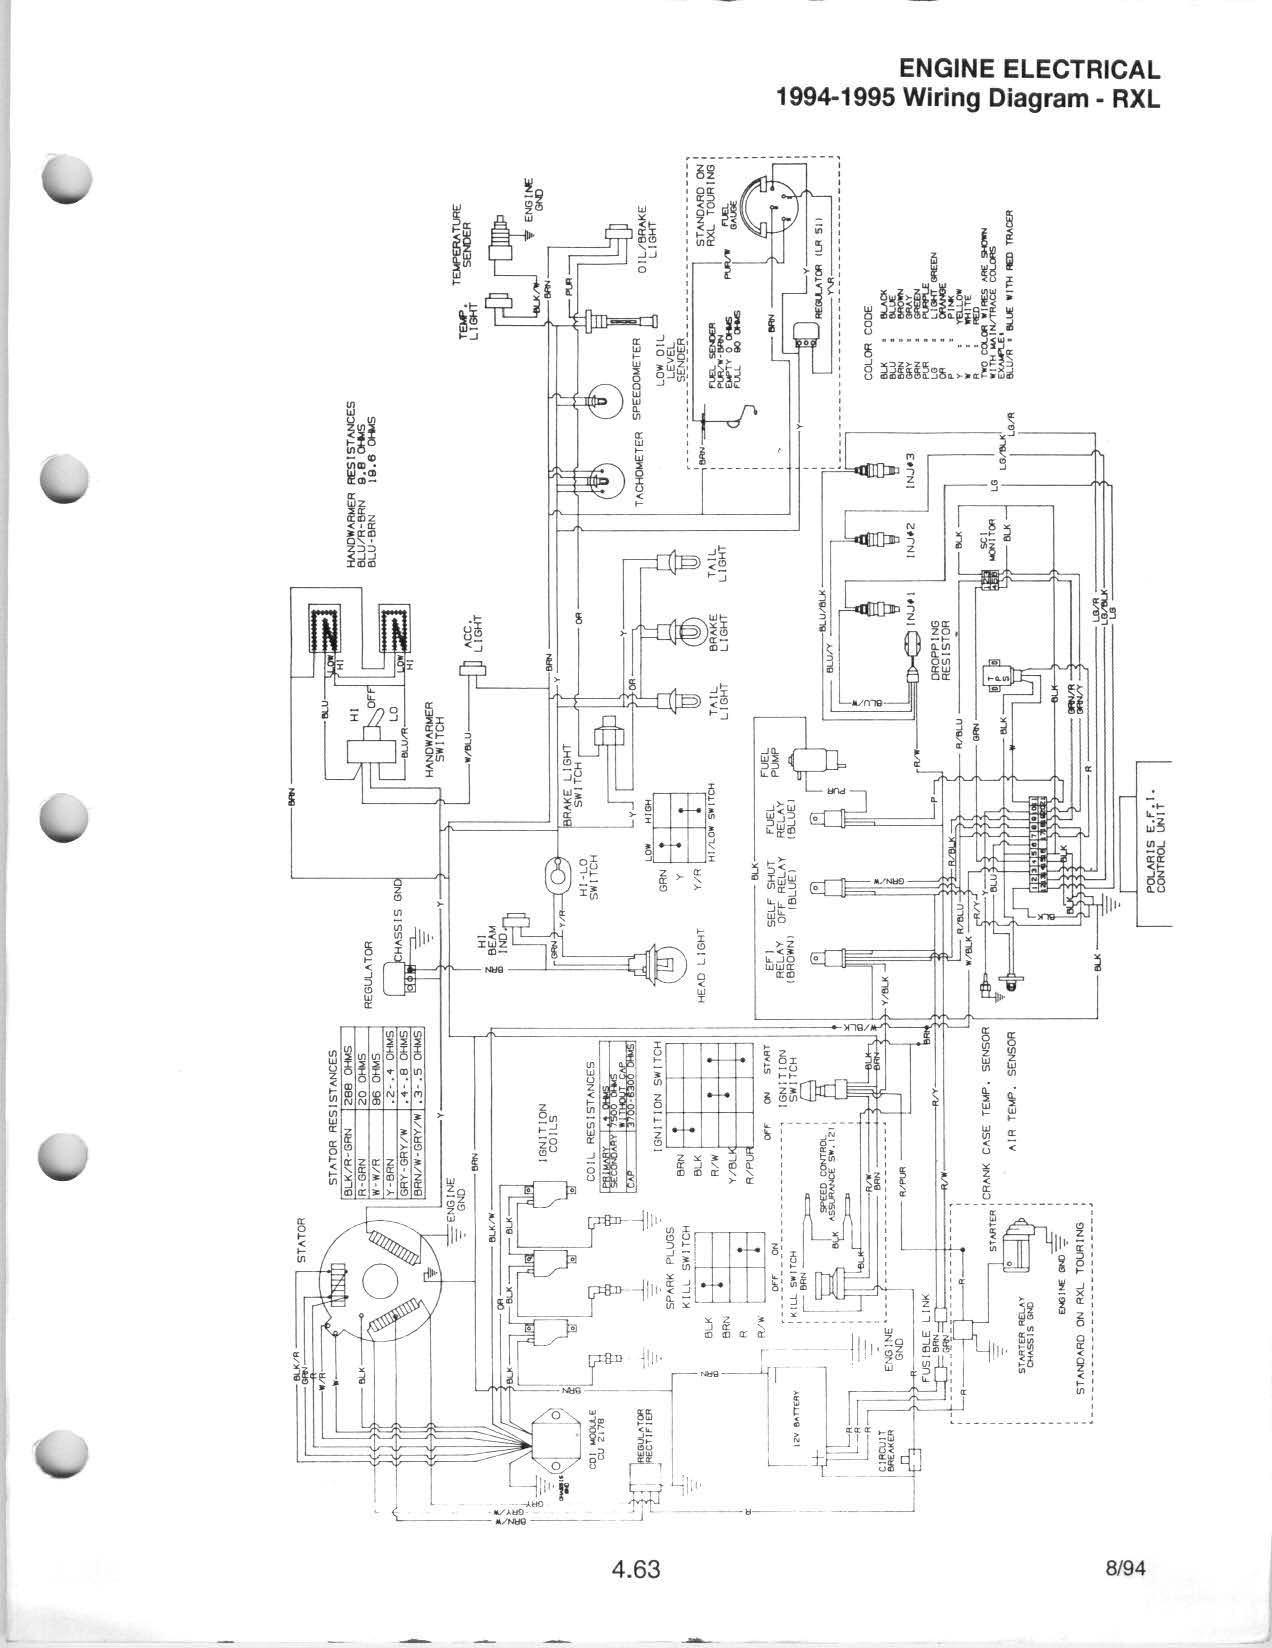 wiring diagram for 1991 polaris rxl wiring diagram for 97 polaris 425 magnum 95 rxl diagram